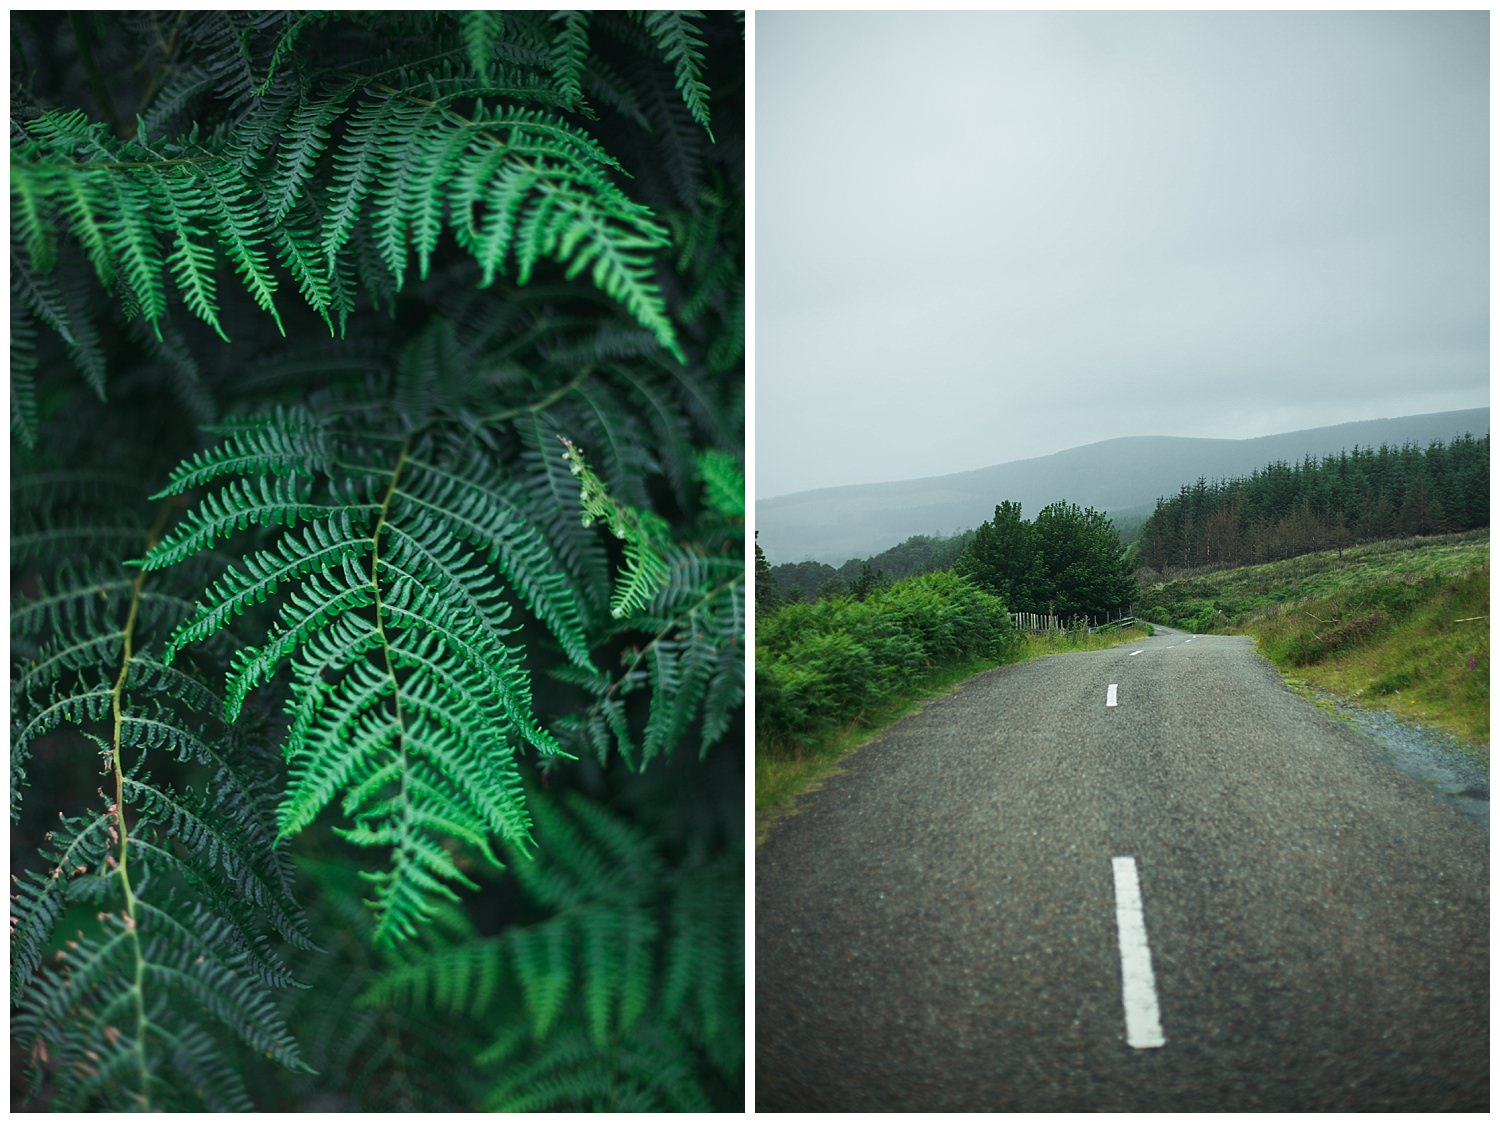 Ferns along military road in the Wicklow mountains